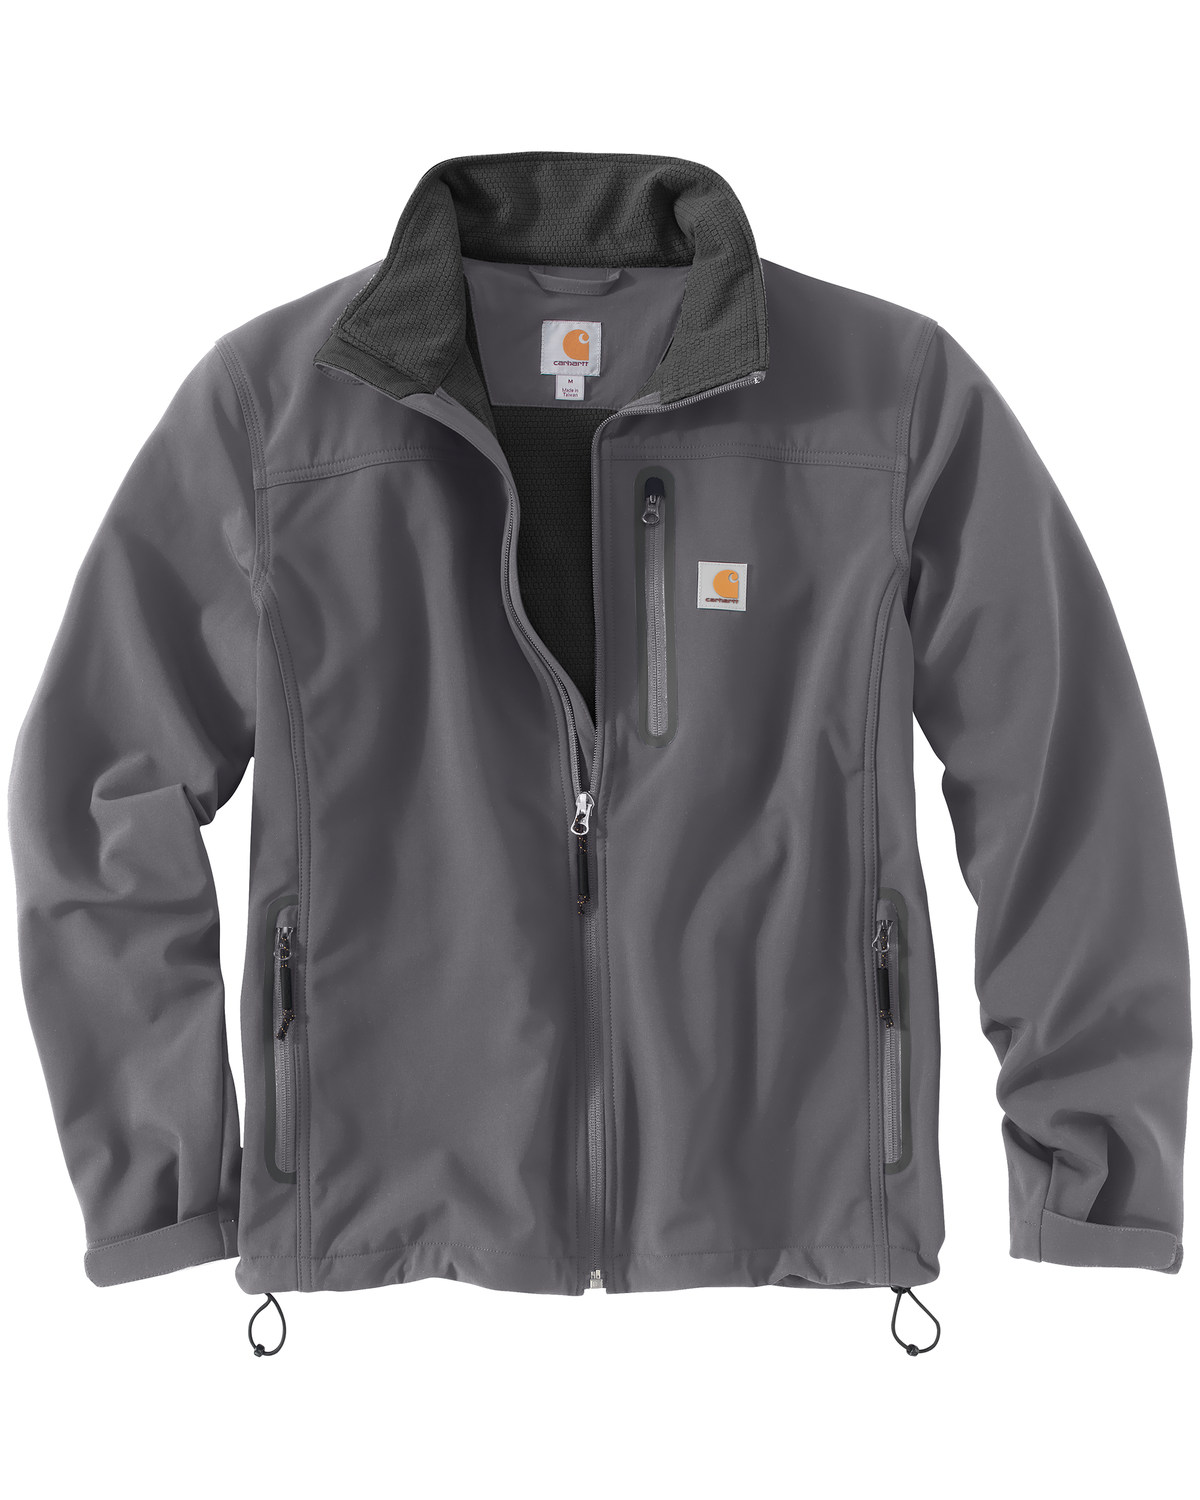 2d7ded56c030b Zoomed Image Carhartt Men's Denwood Softshell Jacket, Charcoal Grey, hi-res